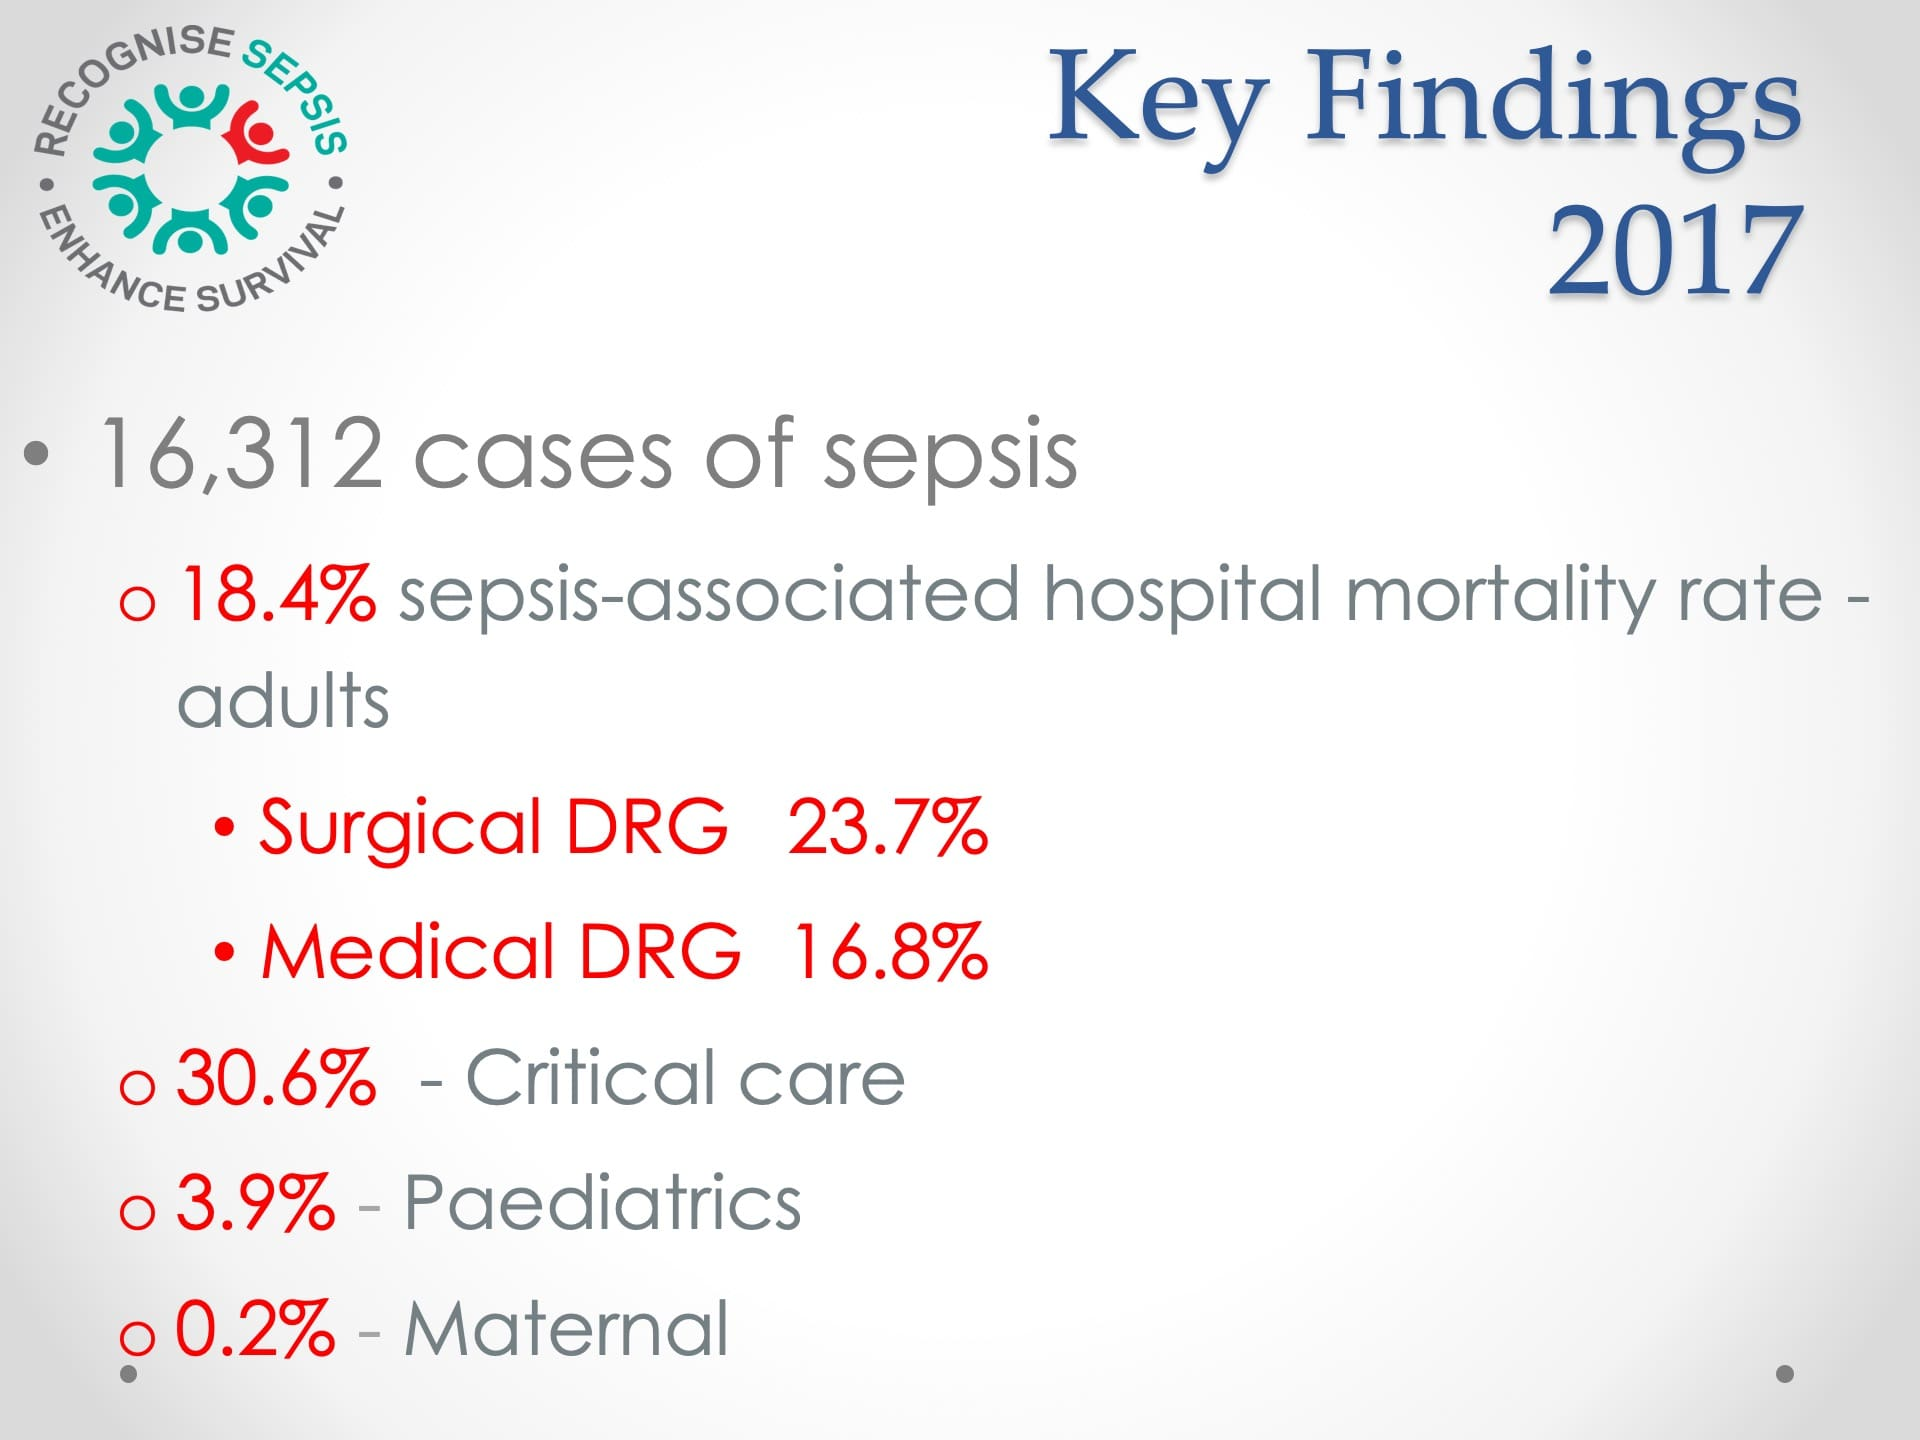 The National Sepsis Plan in Ireland12.jpeg